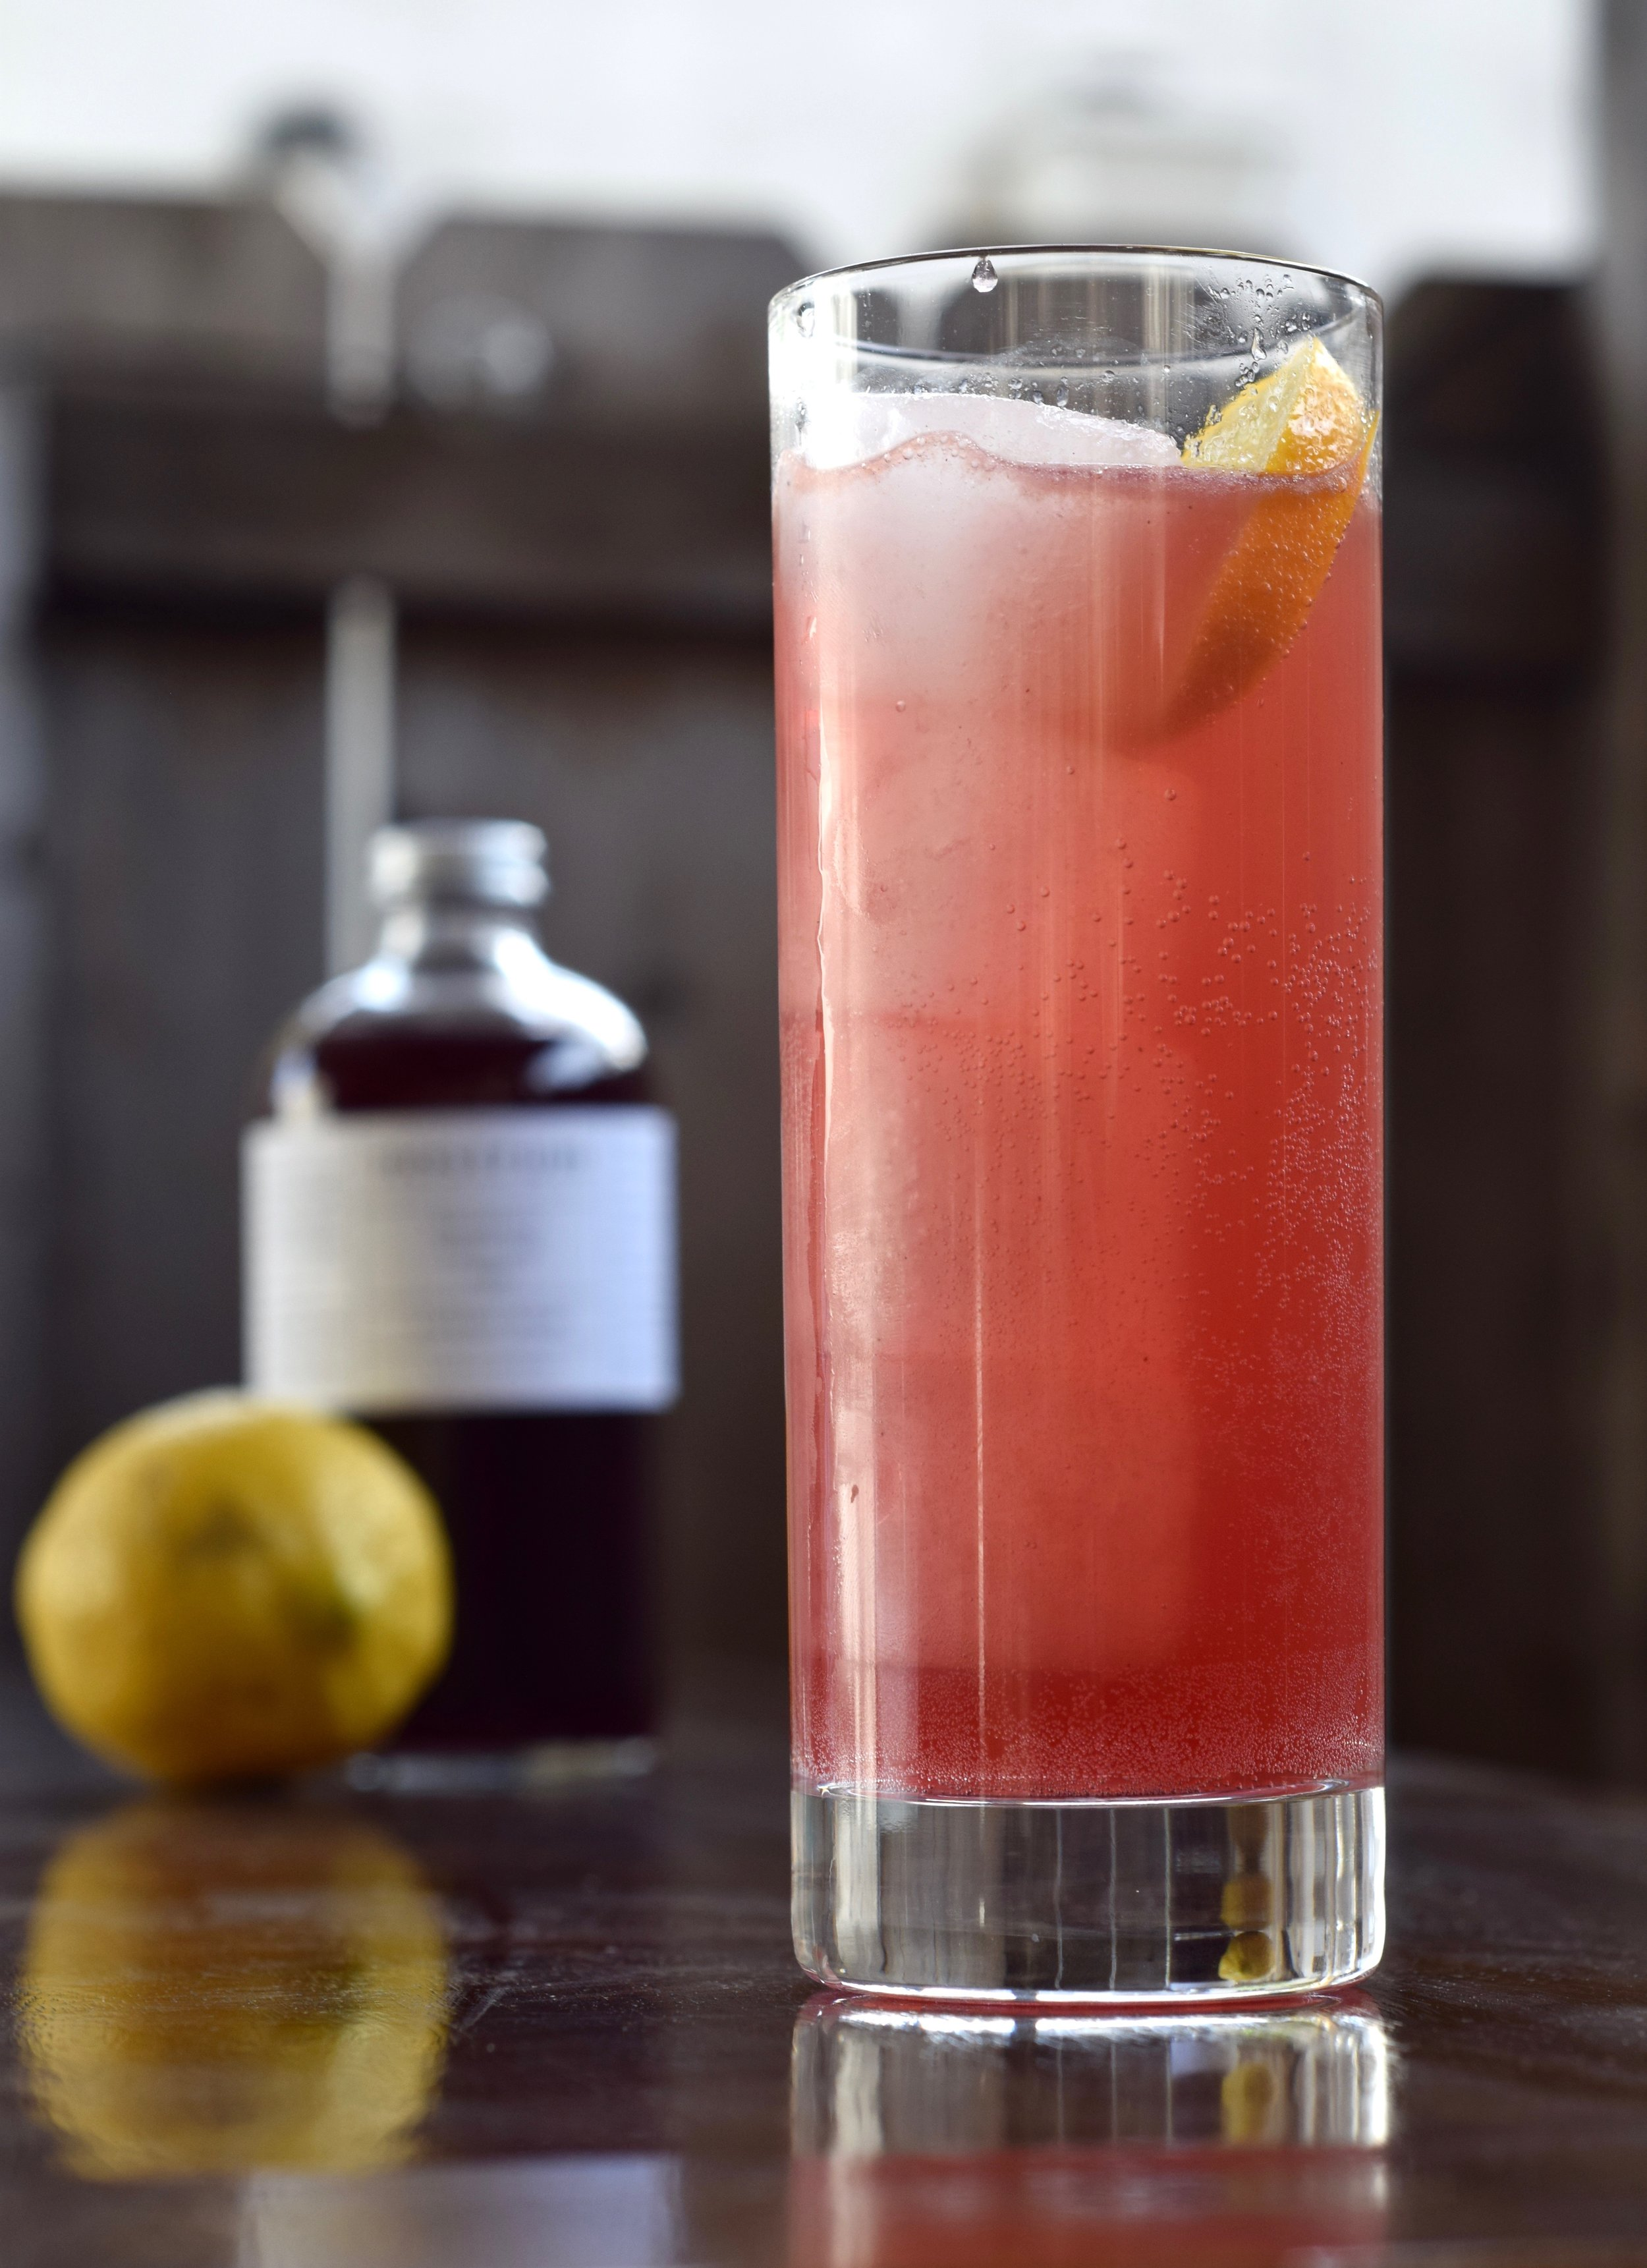 RAINY DAY SCHEDULE - 1 oz nostrum blackberry cacao nib sage shrub1 oz fresh lemon juice1 oz fresh orange juice6 oz soda waterdirections: build in a tall glass filled with ice.